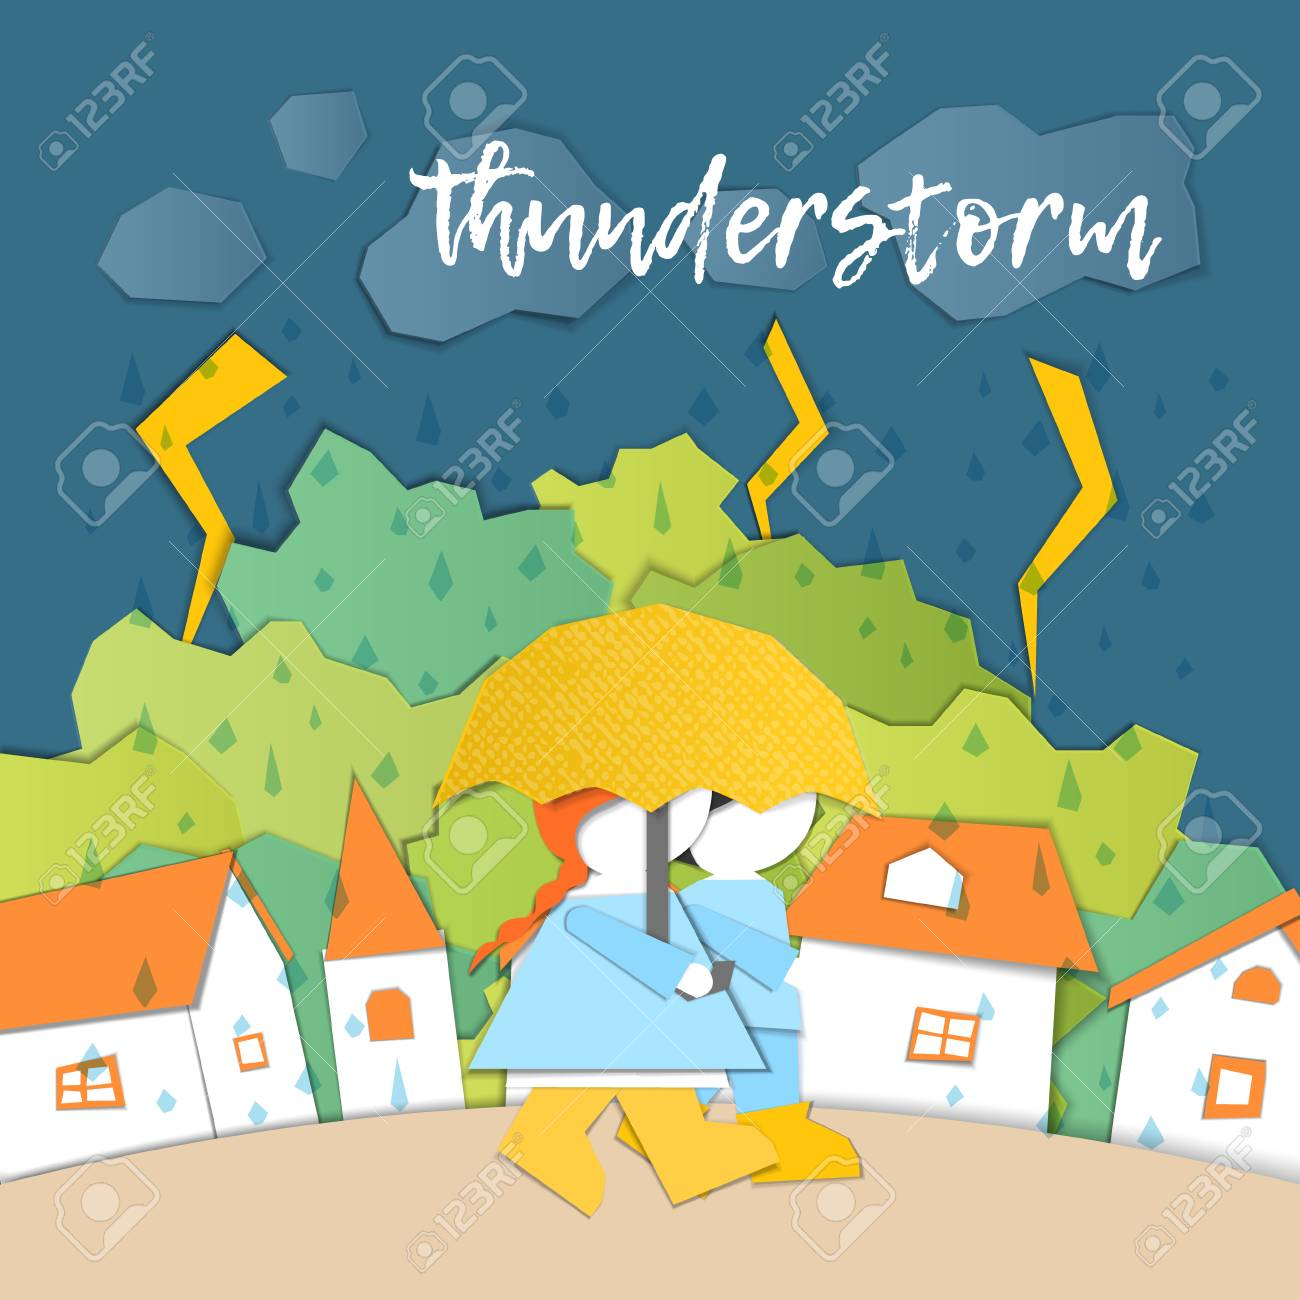 hight resolution of weather forecast in papercut style girl and boy outdoors on a stormy day children s applique style